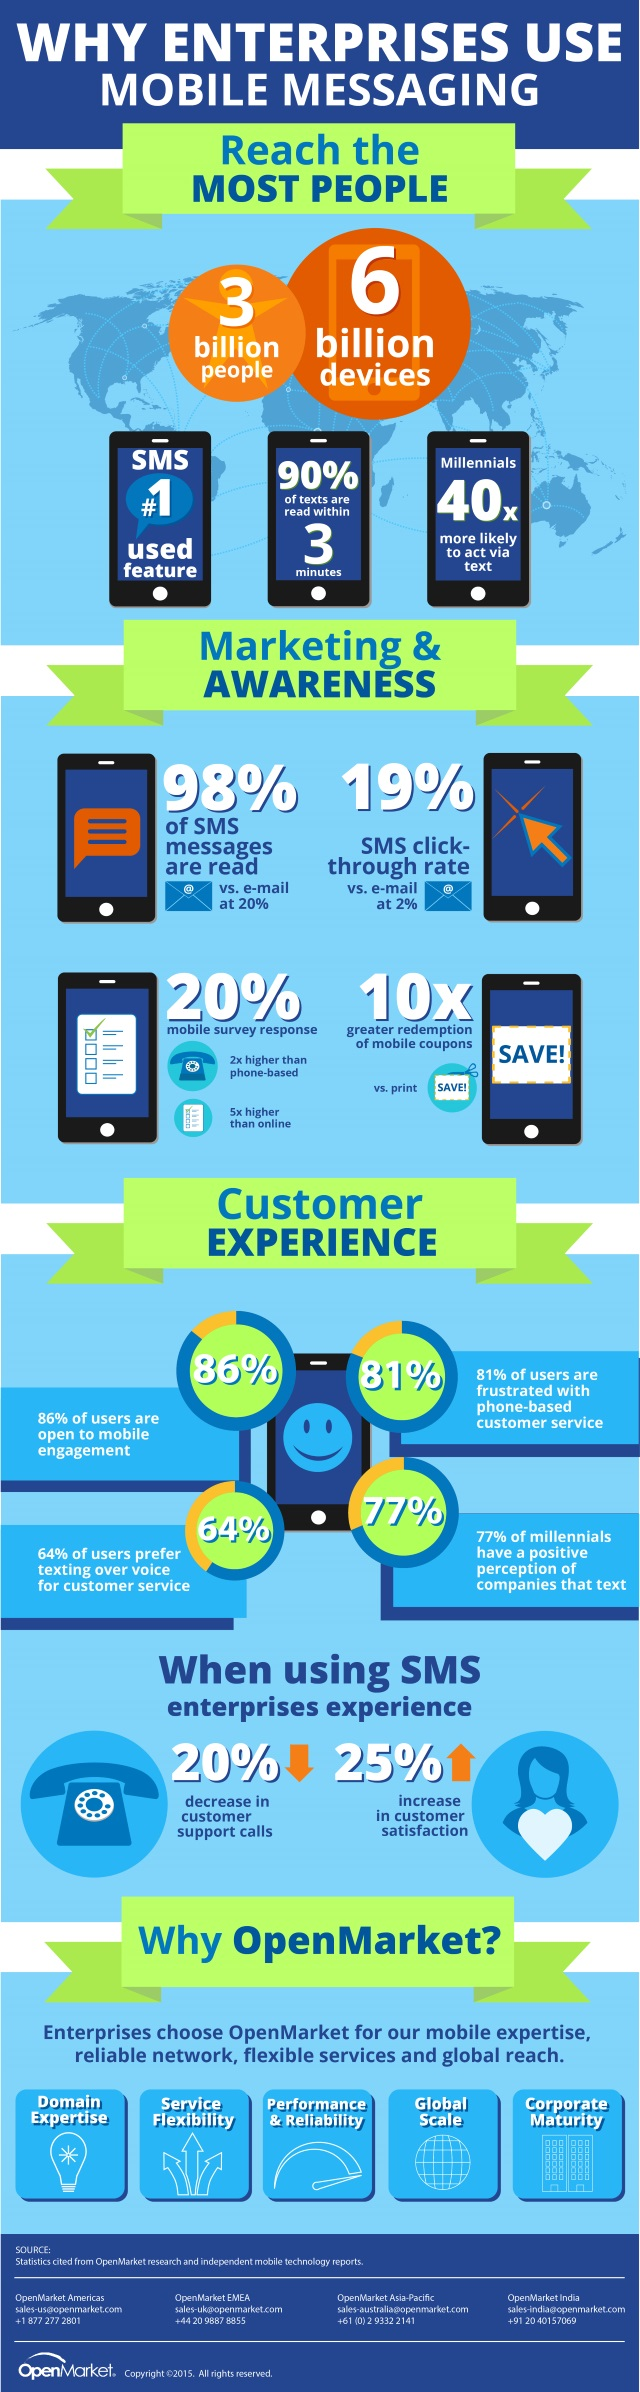 OpenMarket Mobile Messaging Infographic copy